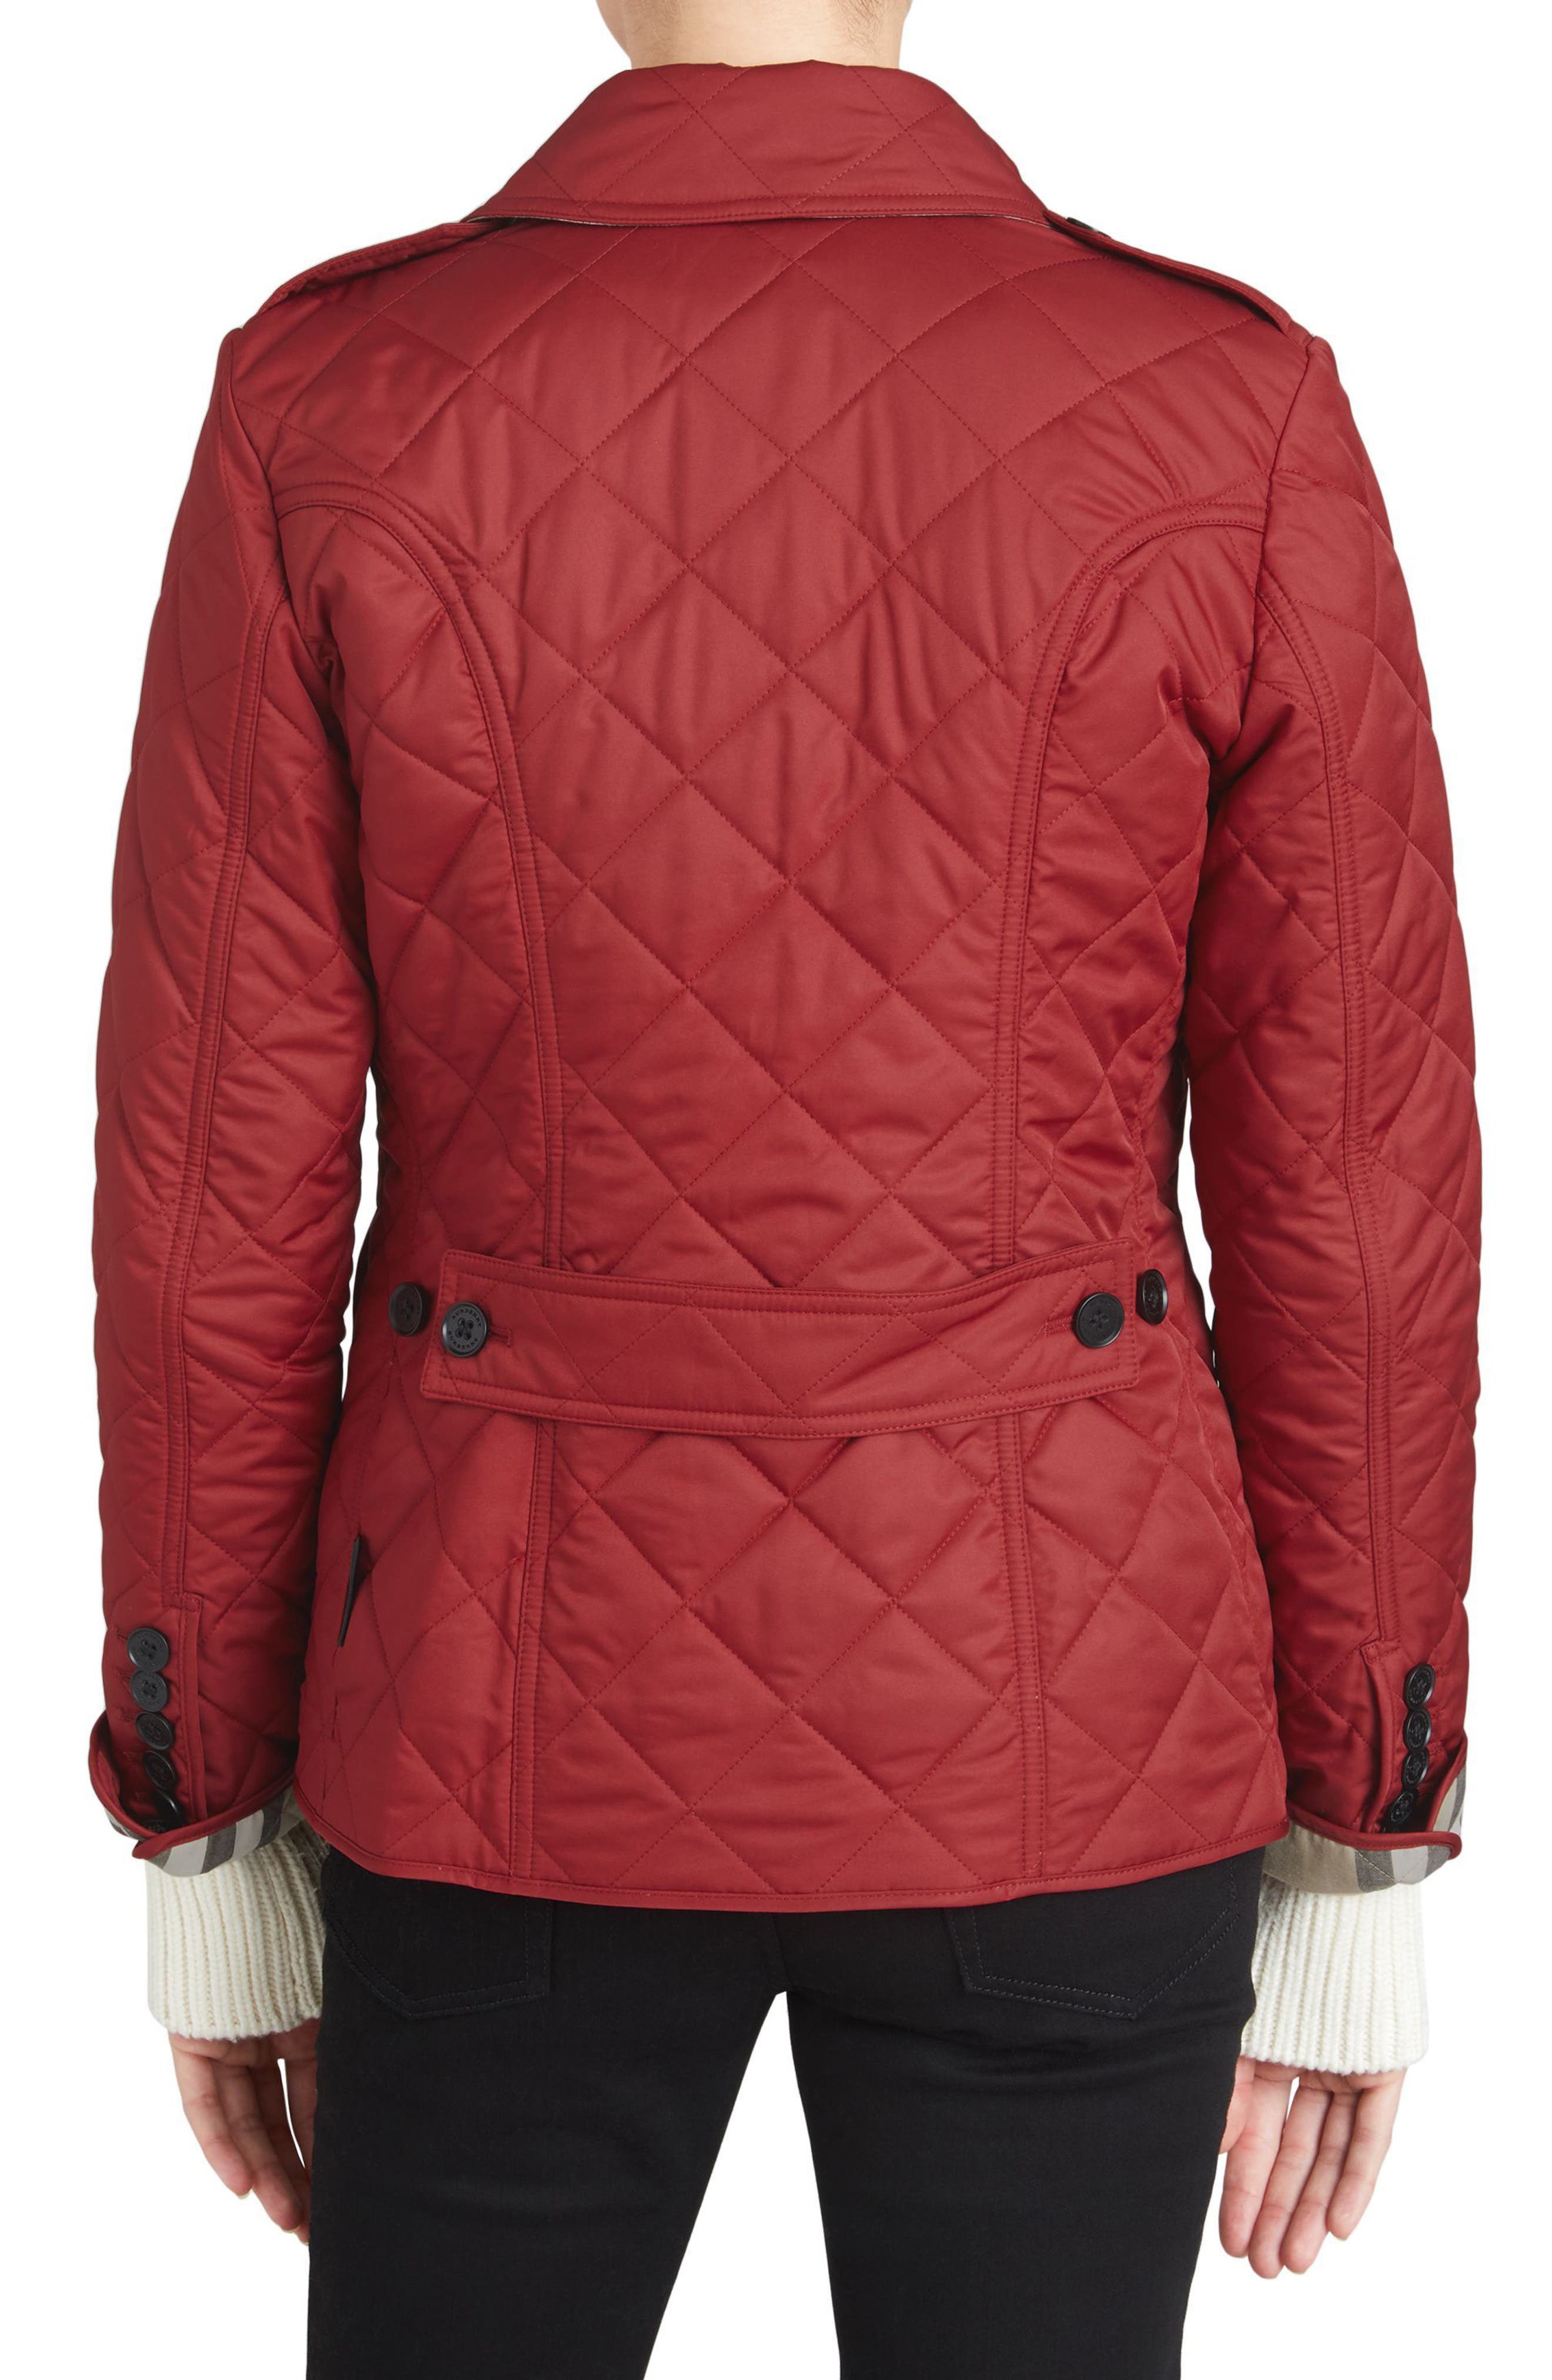 Frankby Quilted Jacket,                             Alternate thumbnail 2, color,                             PARADE RED